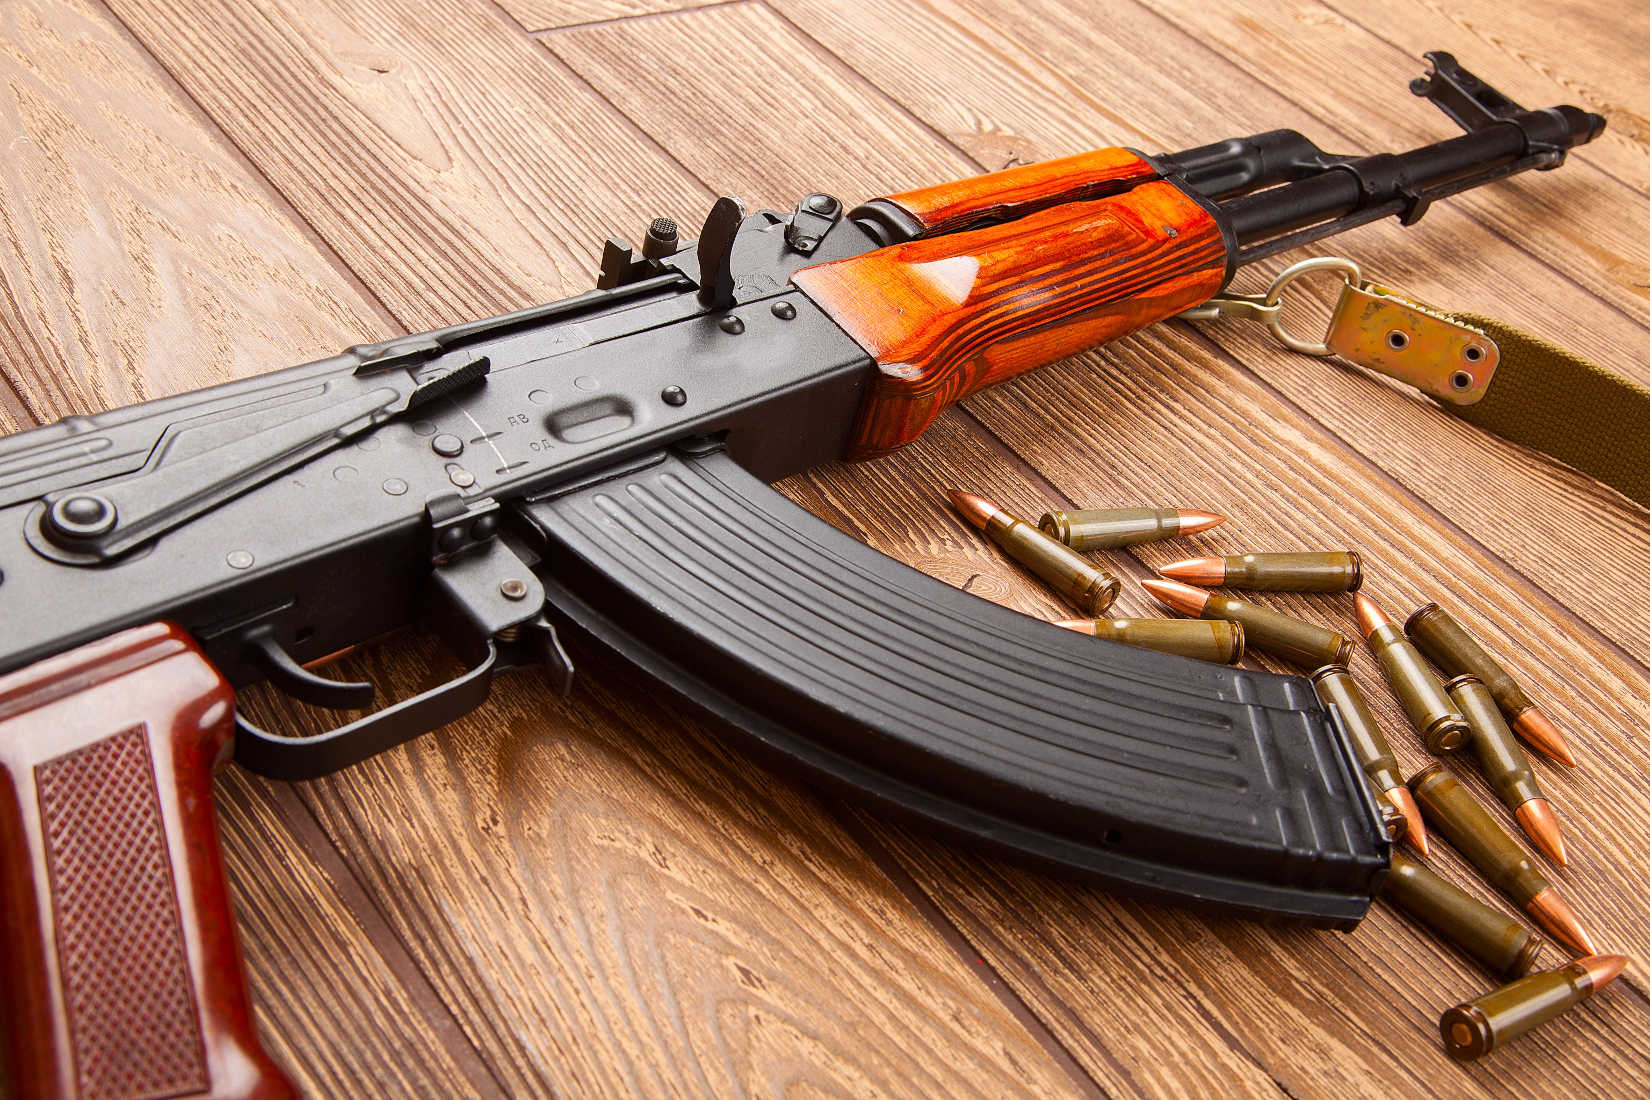 The AK-47 in Popular Culture: Not as Common as You May Think